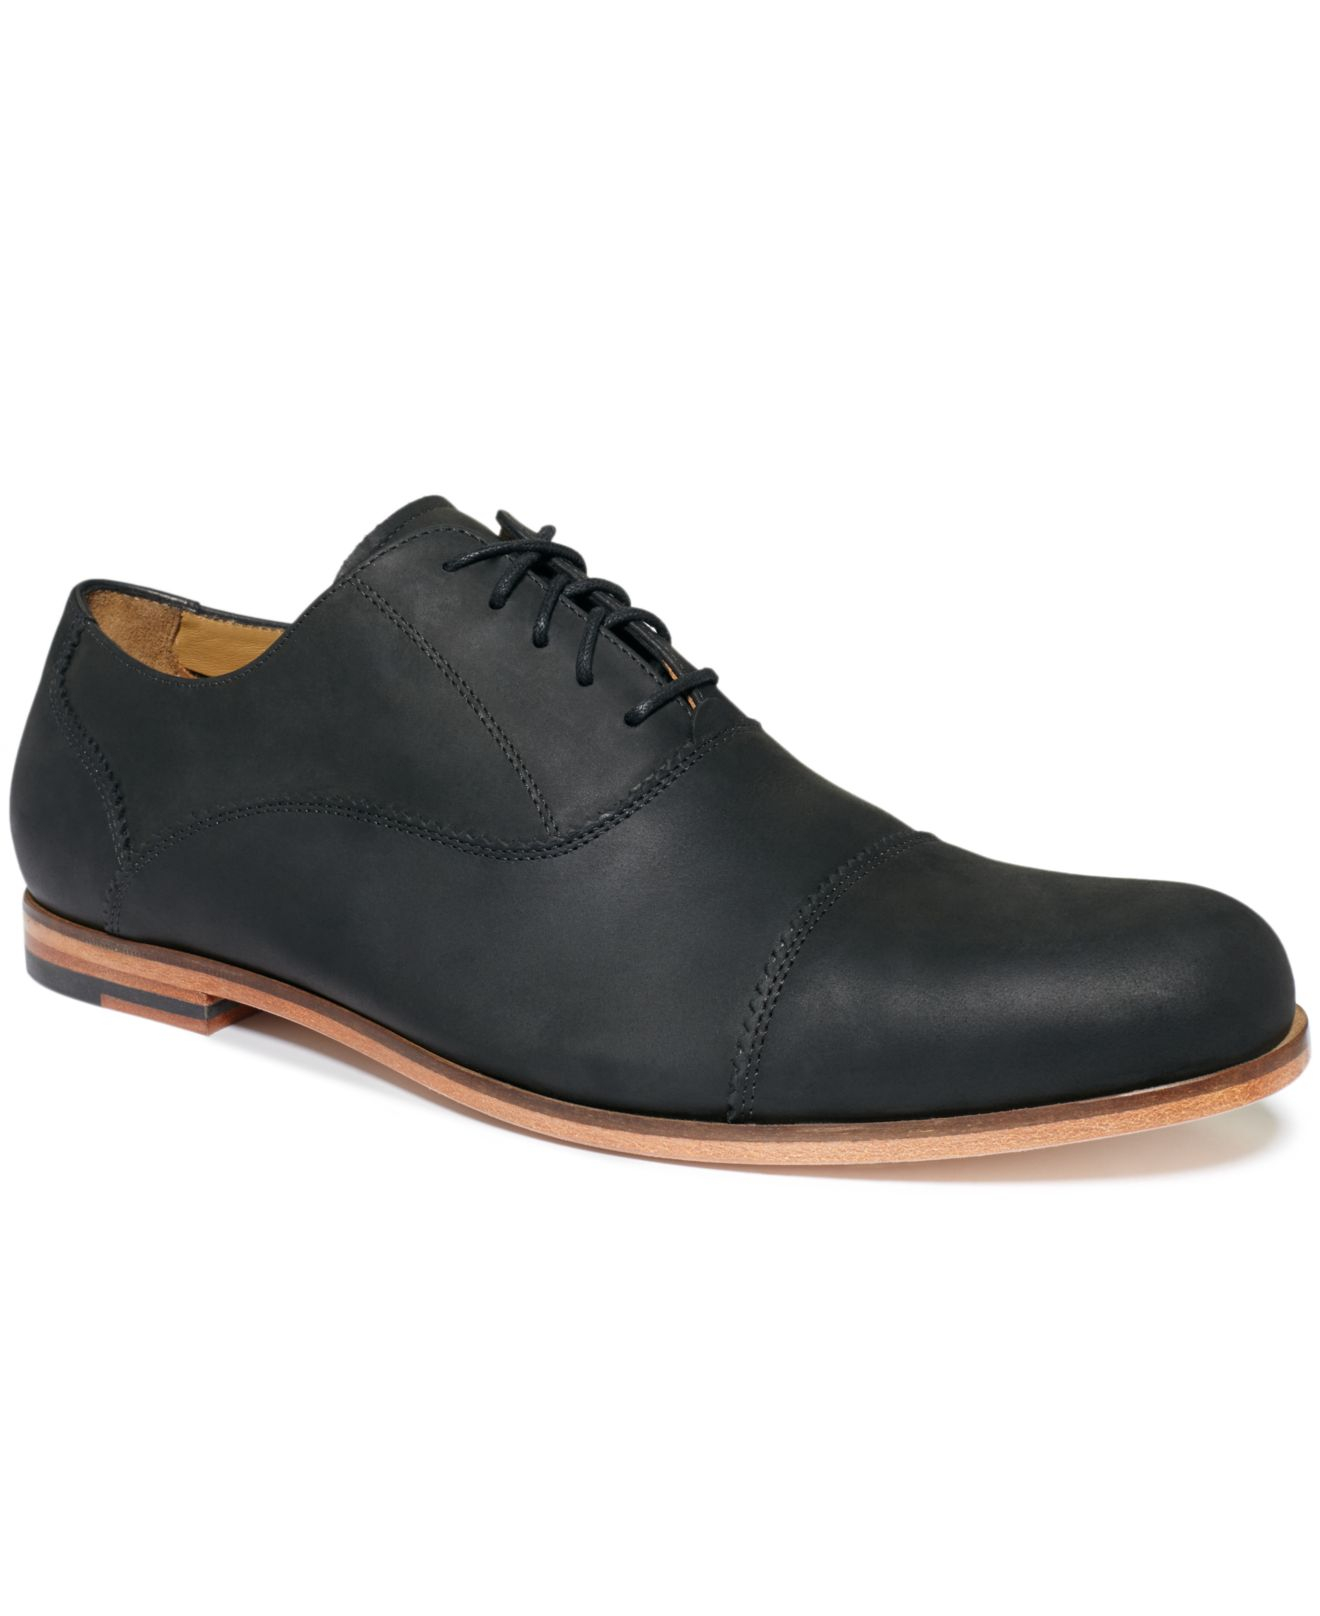 Men's Cole Haan Leather Lace-Up Sneaker. More than footwear the Cole Haan Shapley Sneaker II makes a statement every time you lace up. These smooth leather sneakers are lined with a soft and breathable fabric for abrasion free wear.